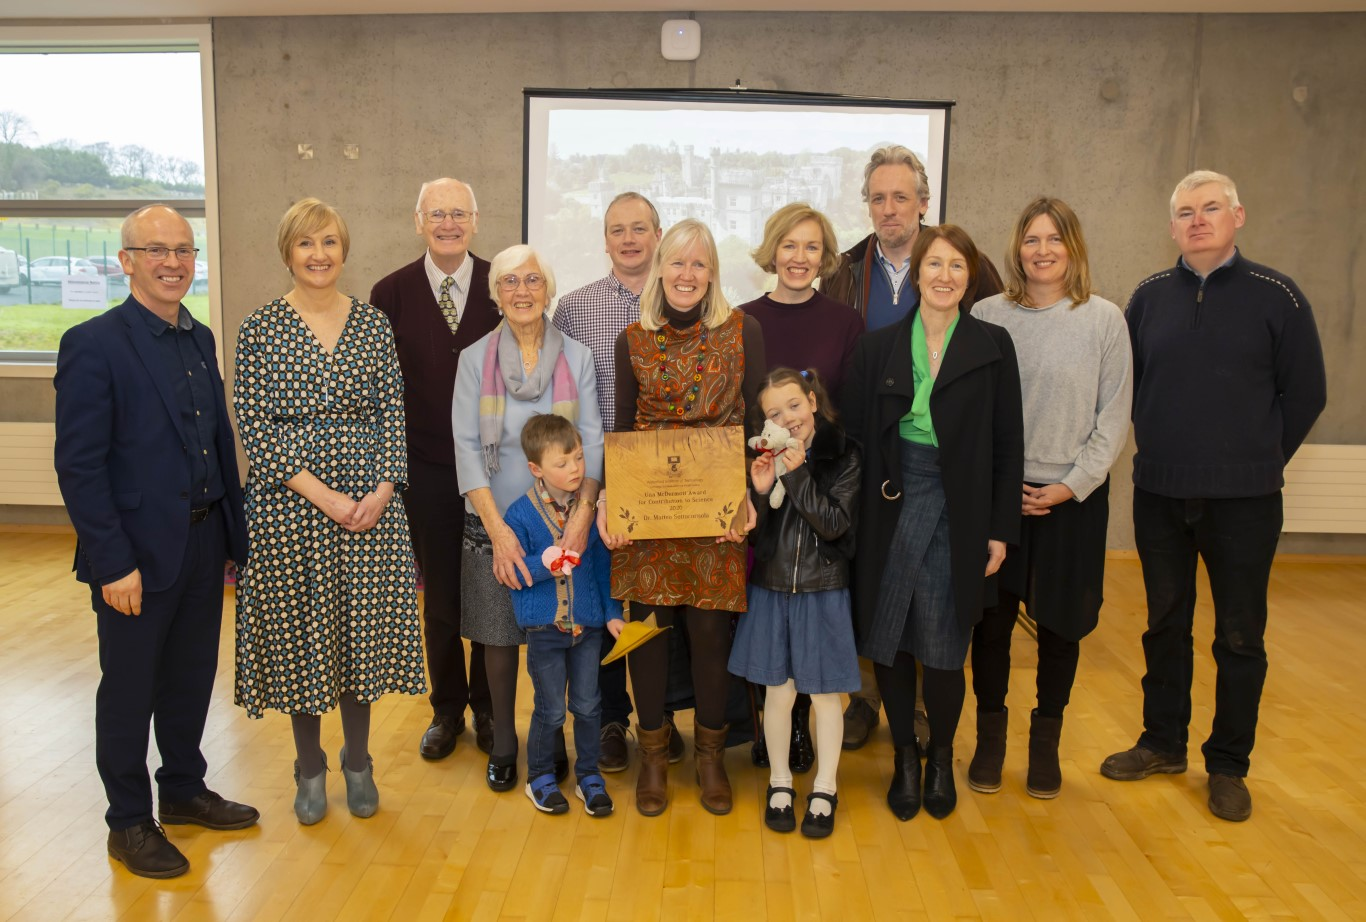 In centre is Sinead O'Connell, award recipient on behalf of Dr Matteo Sottocornola, their children Niamh and Sean and the O'Connell family, with Dr Peter McLoughlin, Head of School of Science and Tom Kent, Programme Leader BSc in Forestry.